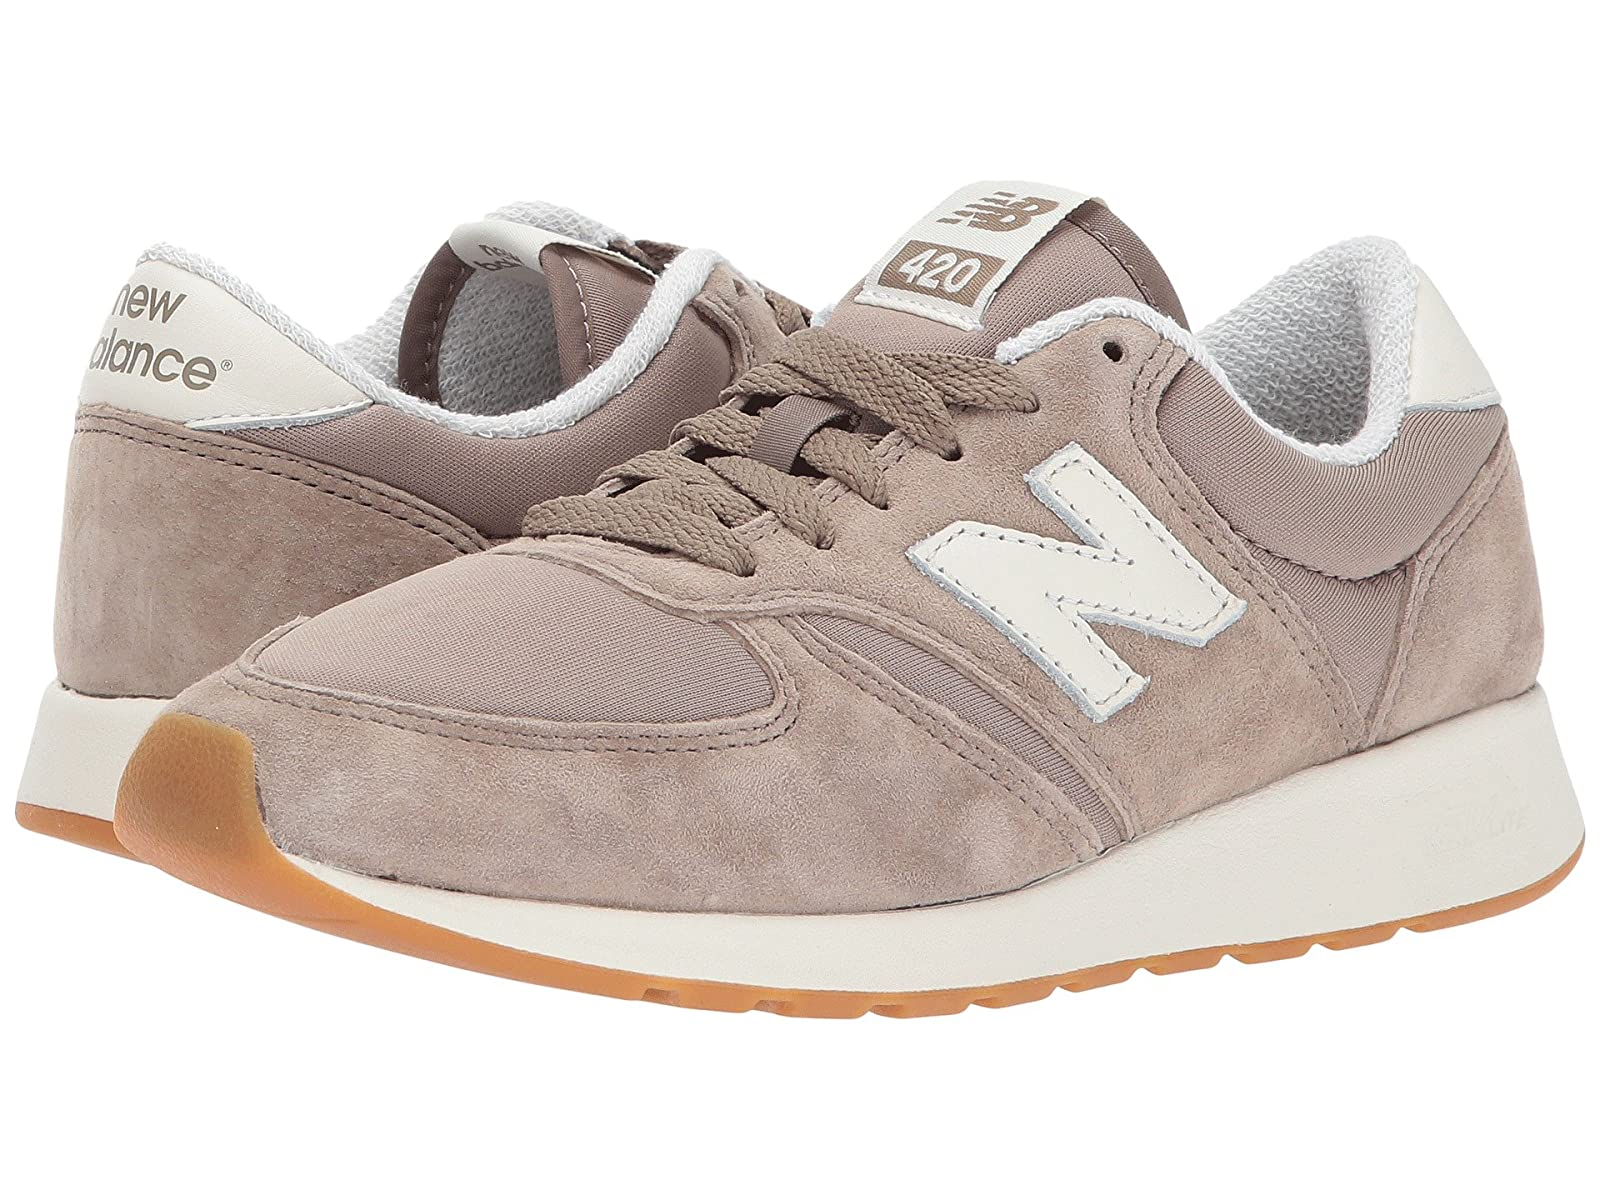 New Balance Classics WRL420Cheap and distinctive eye-catching shoes